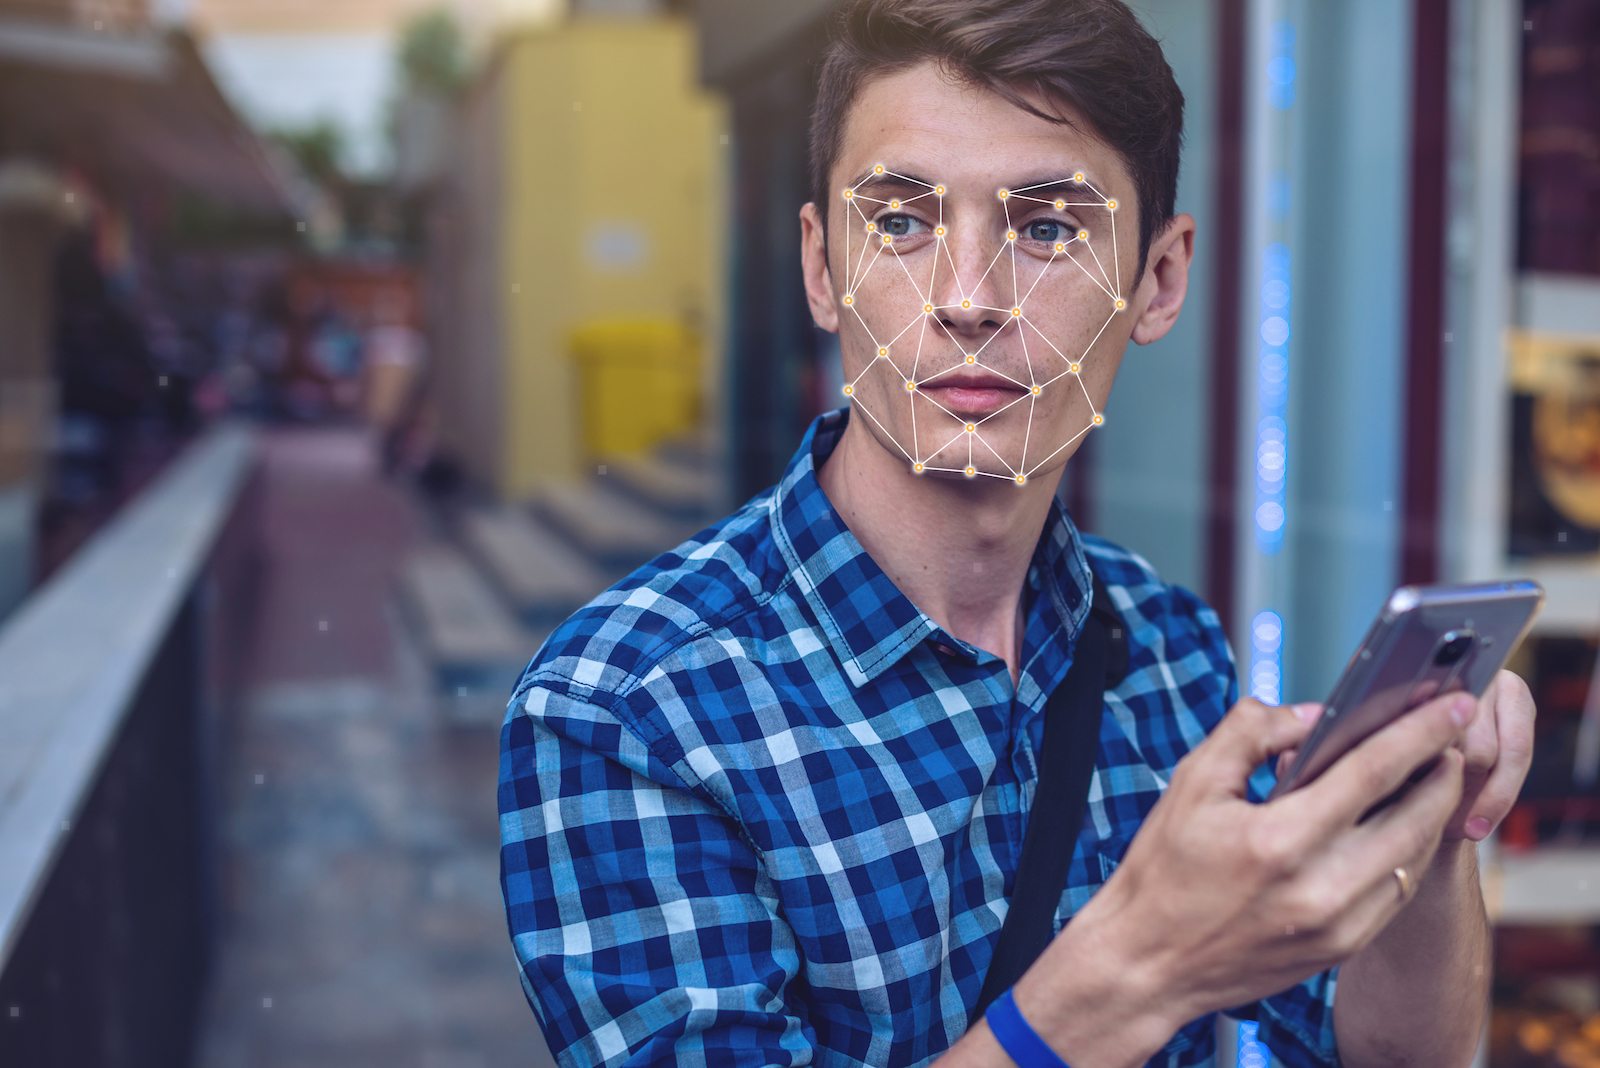 Facial recognition is here: how will consumers respond?